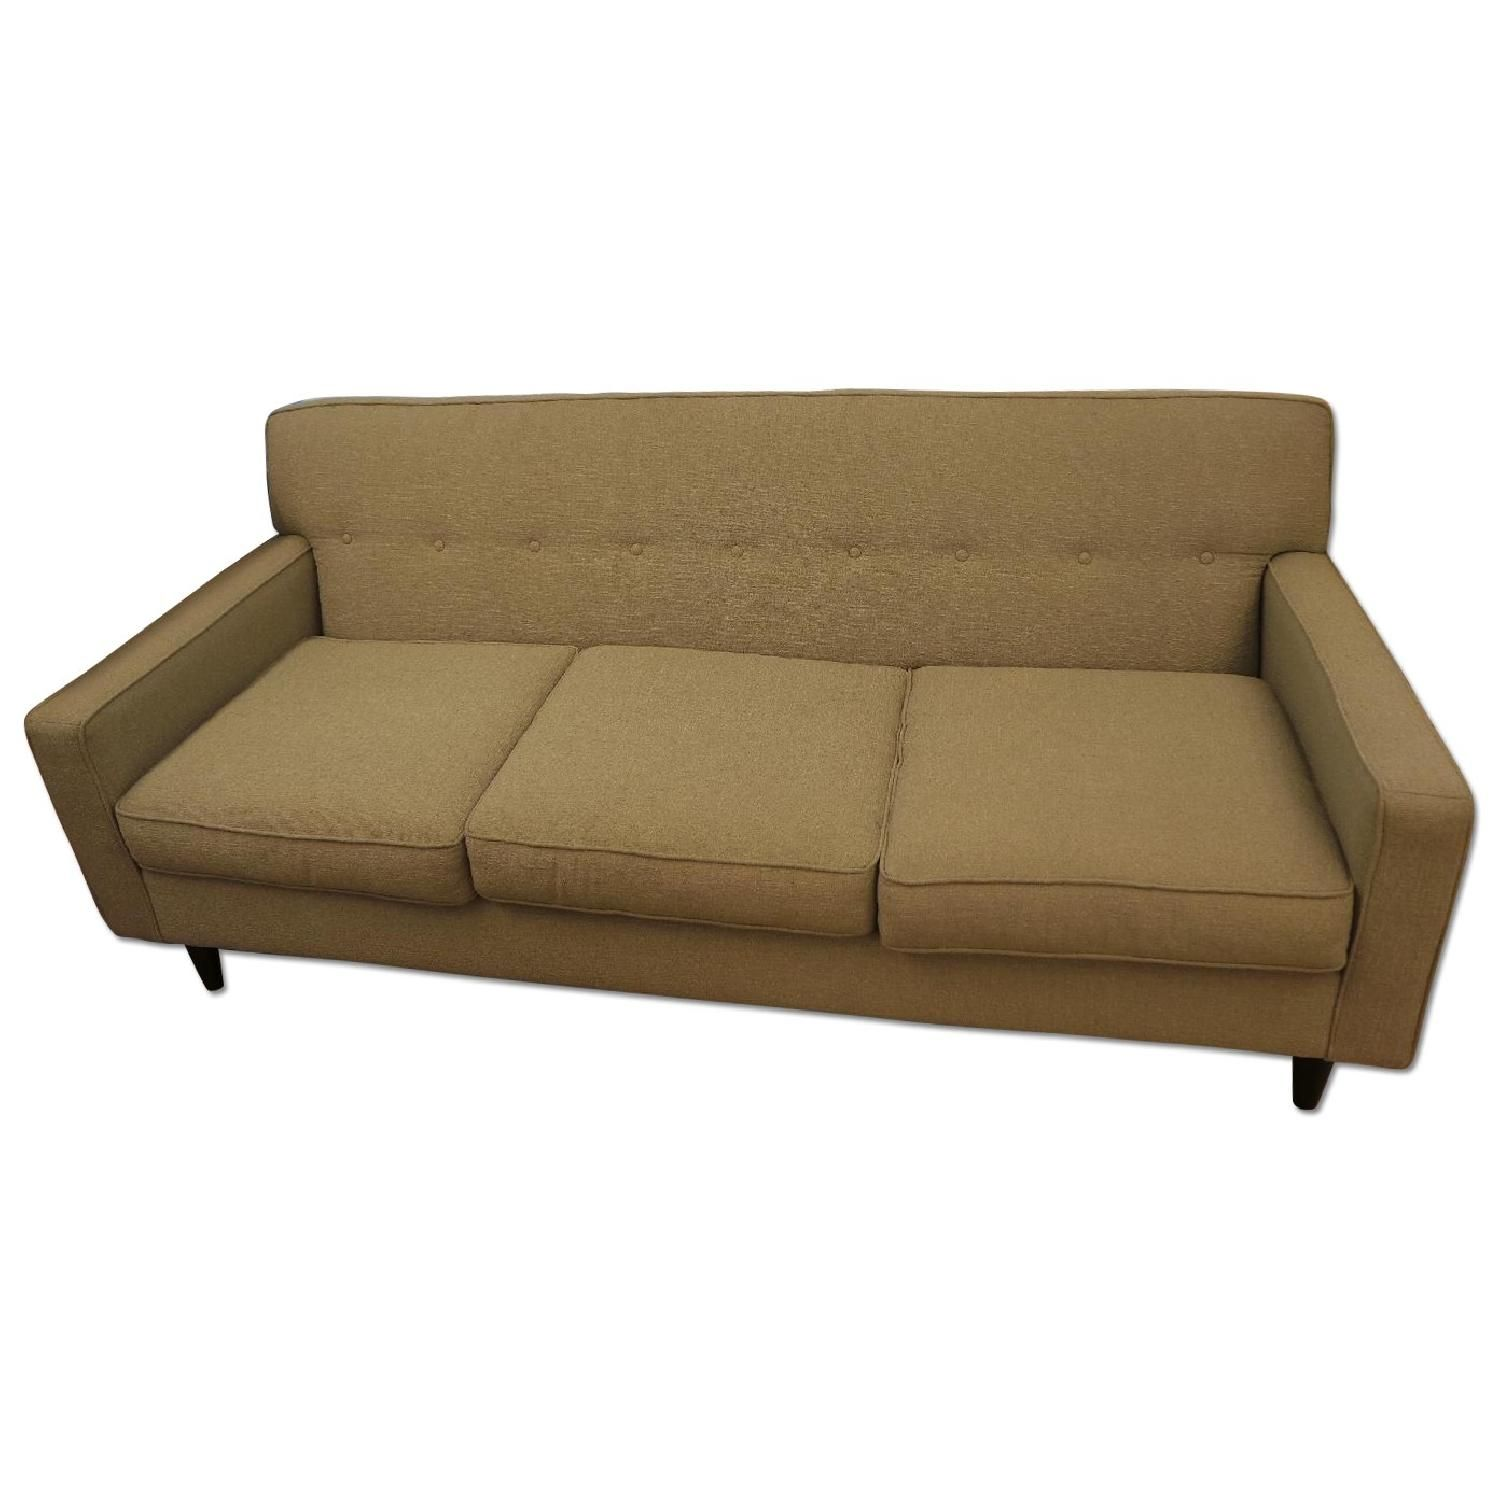 Better By Design Mid Century Modern Sofa